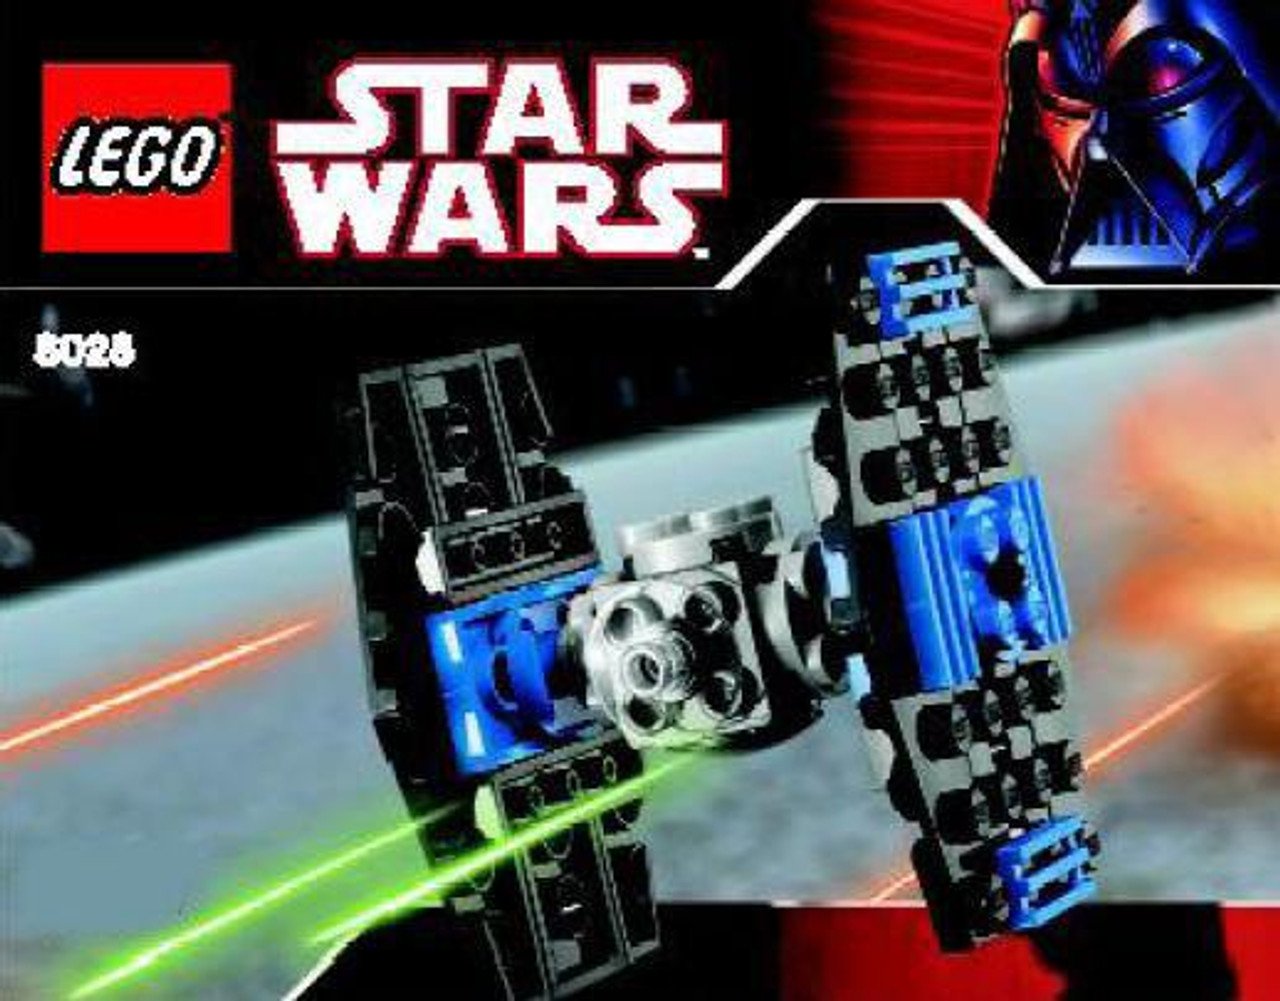 LEGO Star Wars A New Hope Tie-Fighter Exclusive Mini Set #8028 [Bagged]